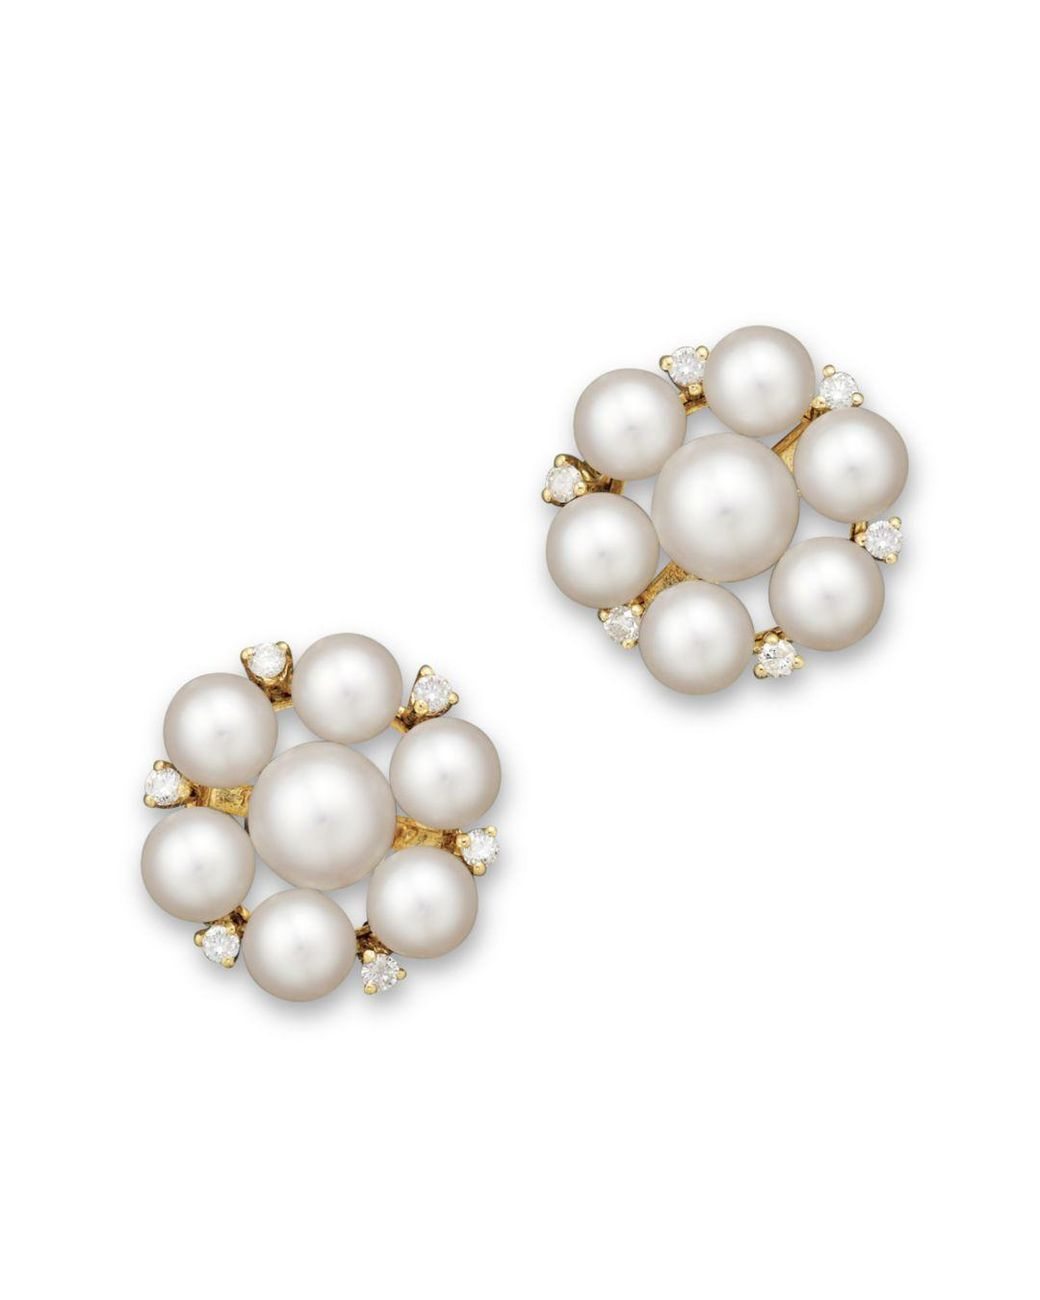 d59e6c988 Lyst - Bloomingdale's Cultured Freshwater Pearl Cluster Earrings In 14k Yellow  Gold in White